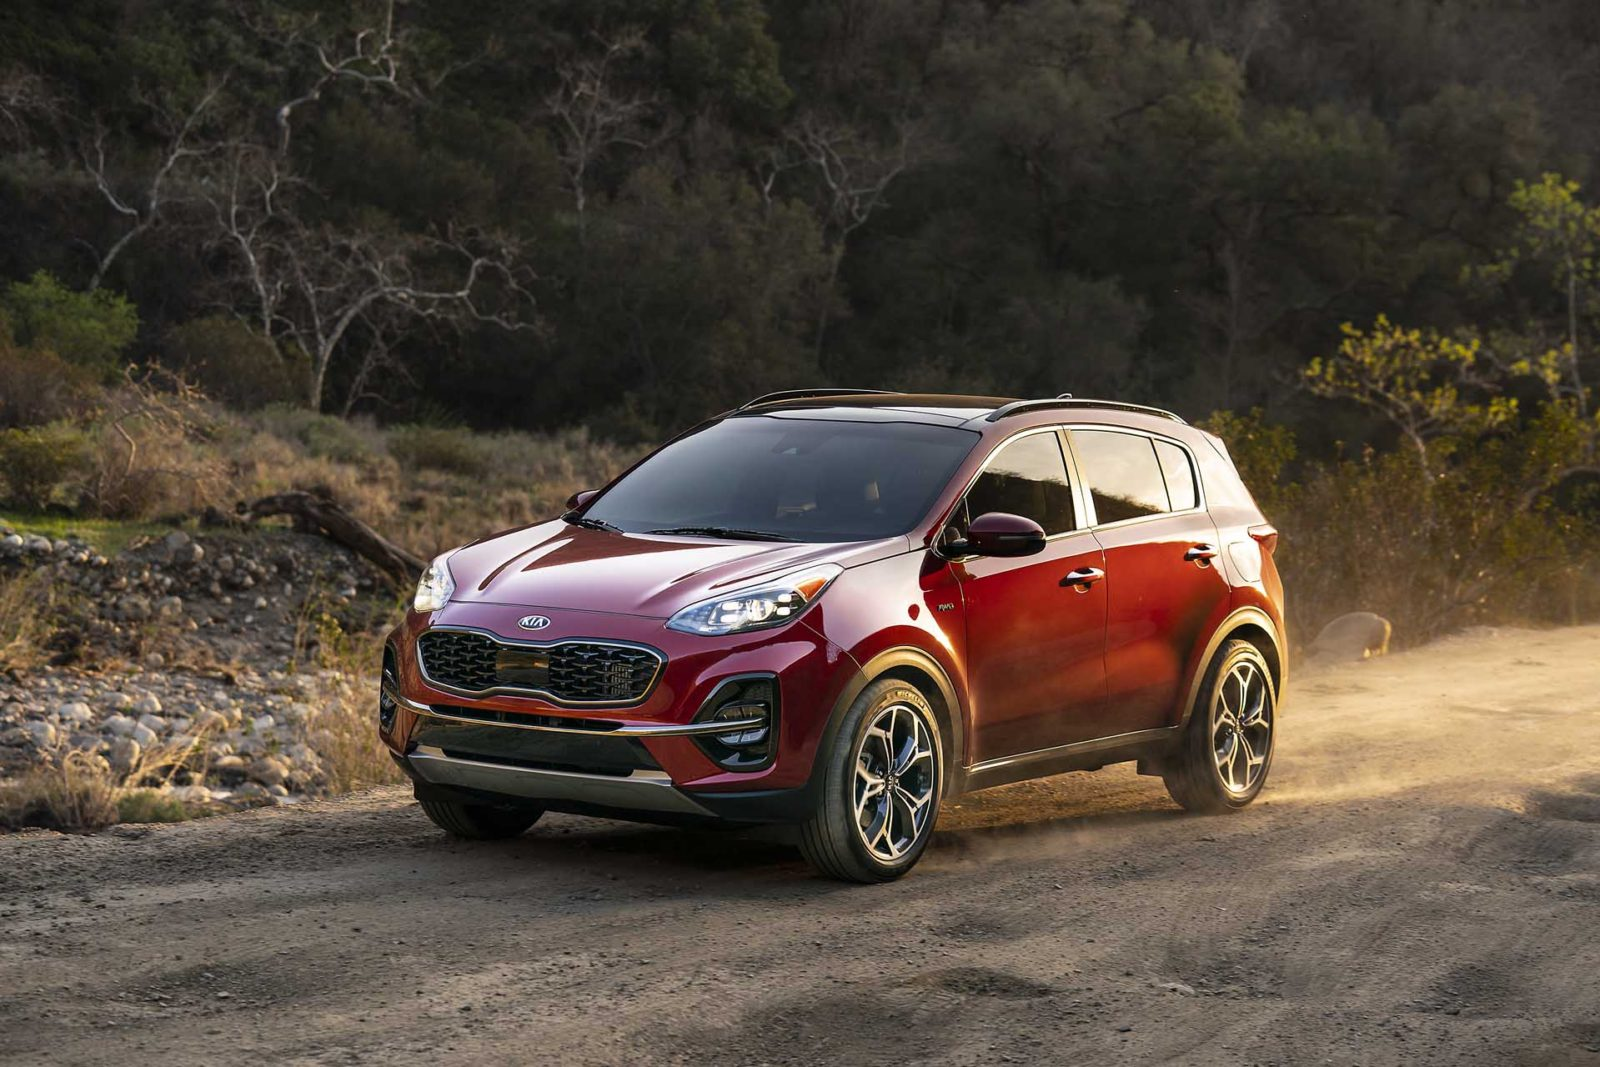 park-outside-due-to-fire-risk,-kia-says-in-recall-of-380,000-sportage-and-cadenza-models